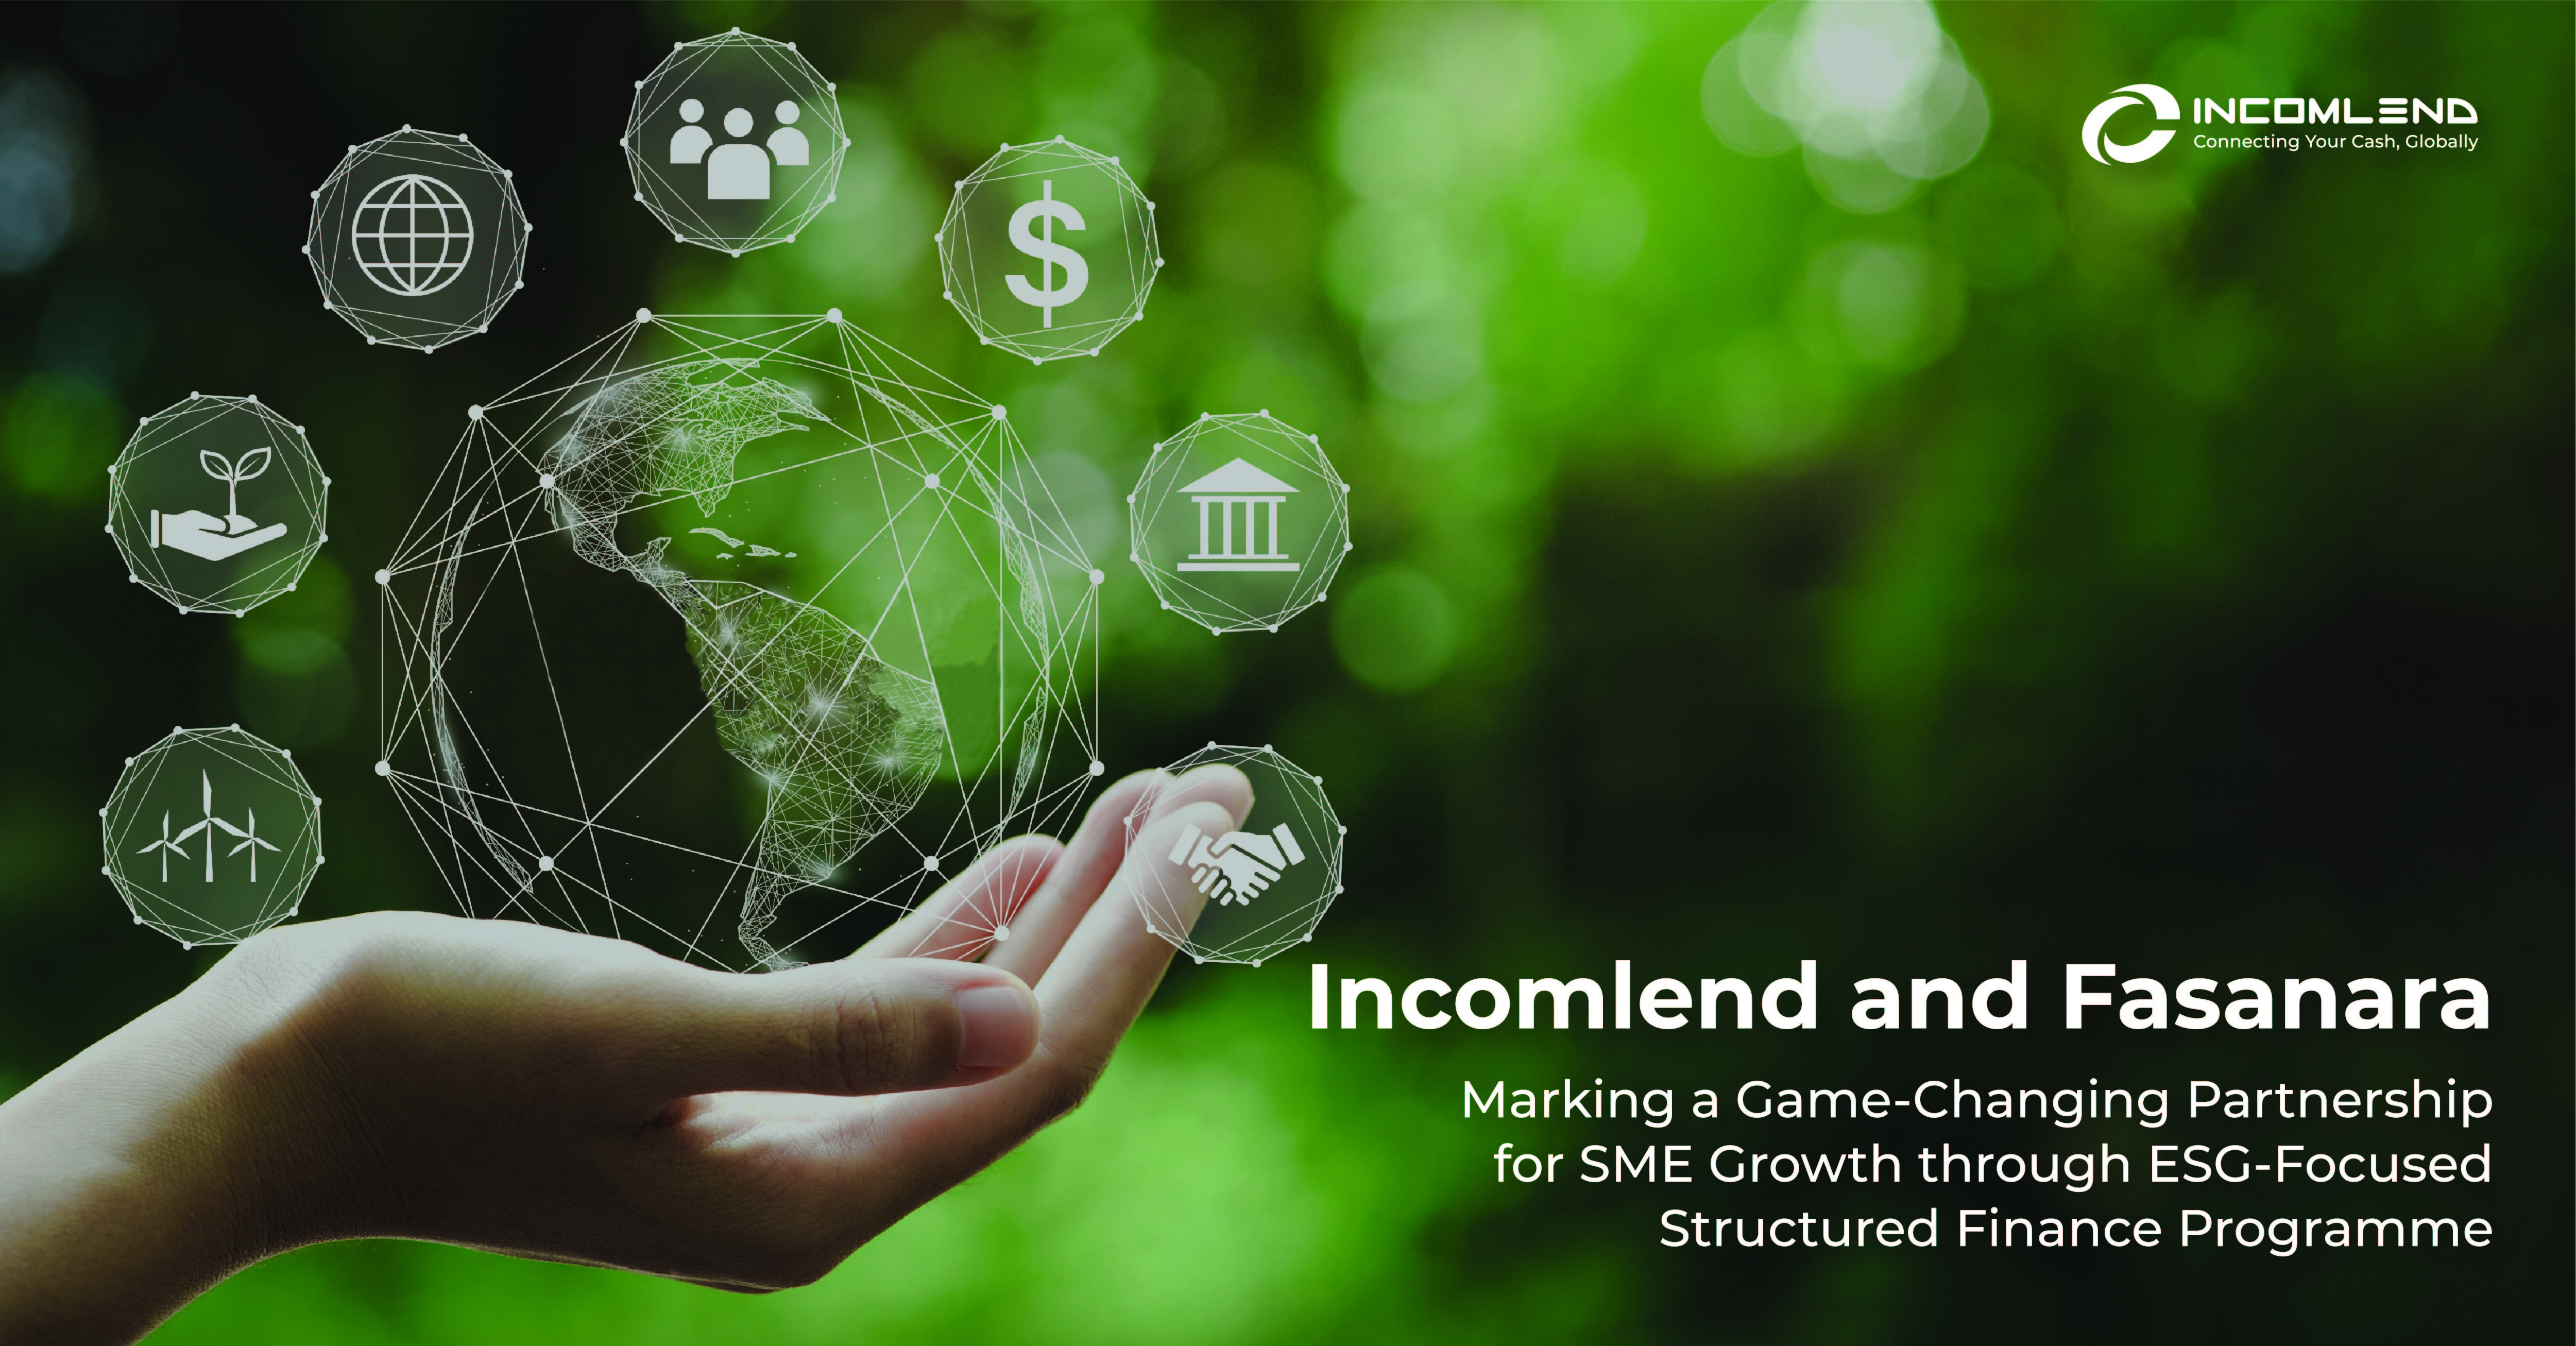 Incomlend Secures US60 Million from Fasanara Capital to Launch New Working Capital Solutions Programme for ESG-Focused SMEs